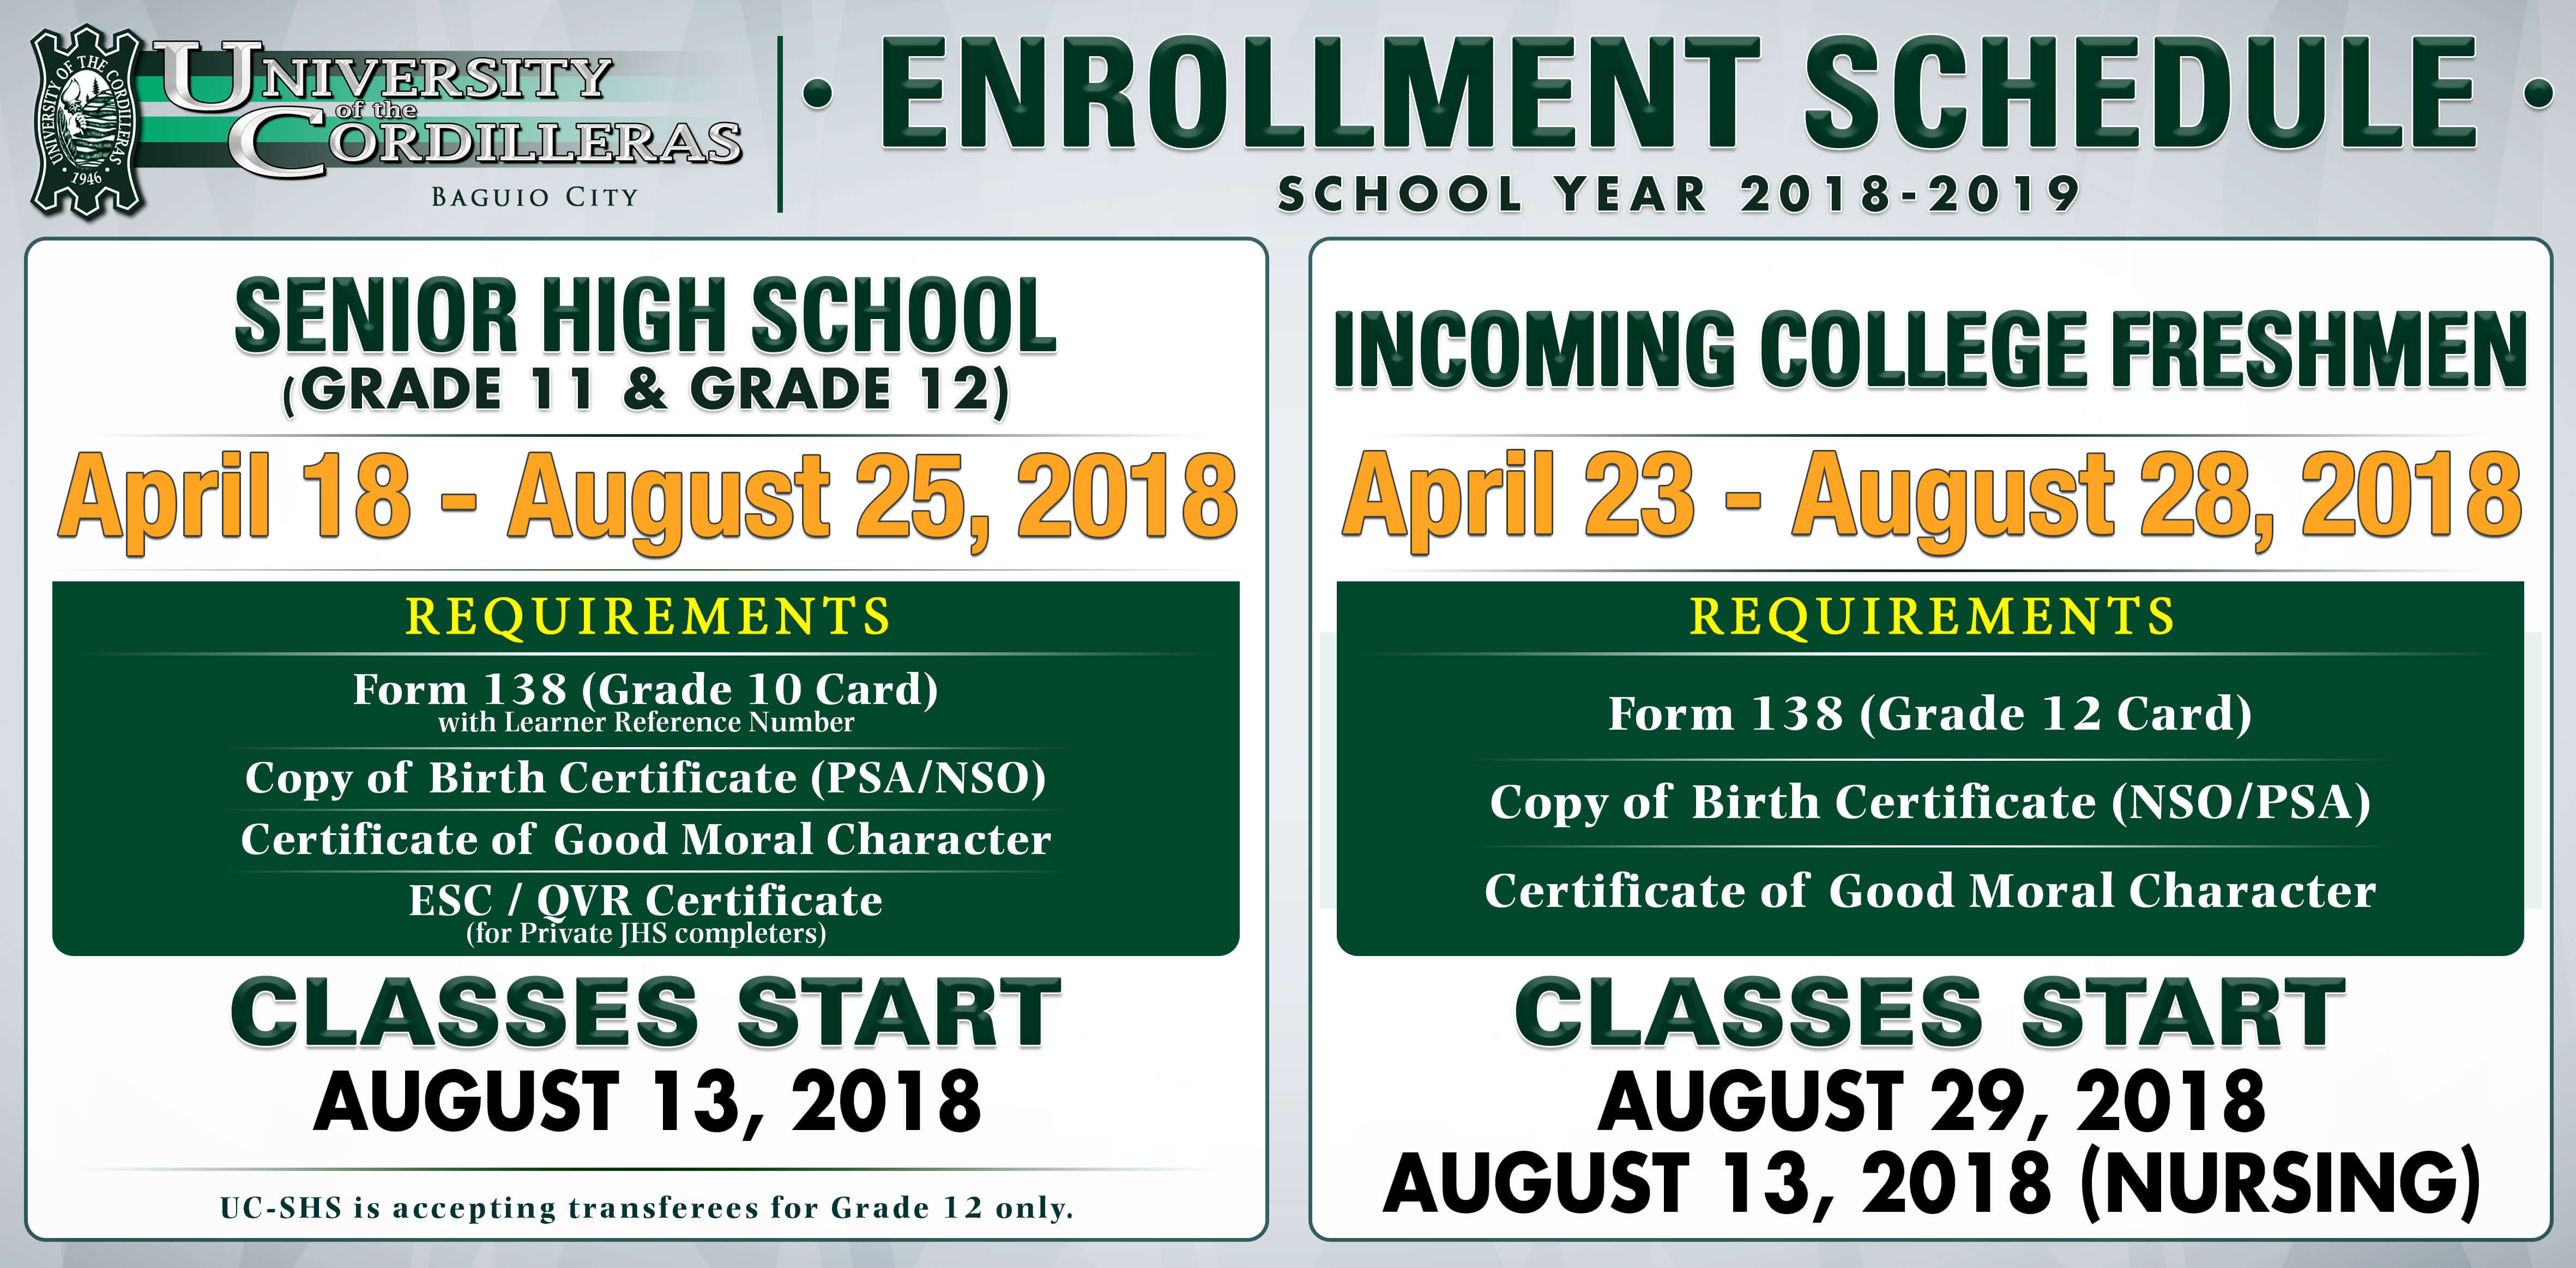 Enrollment schedule sy 2018 2019 ver 1